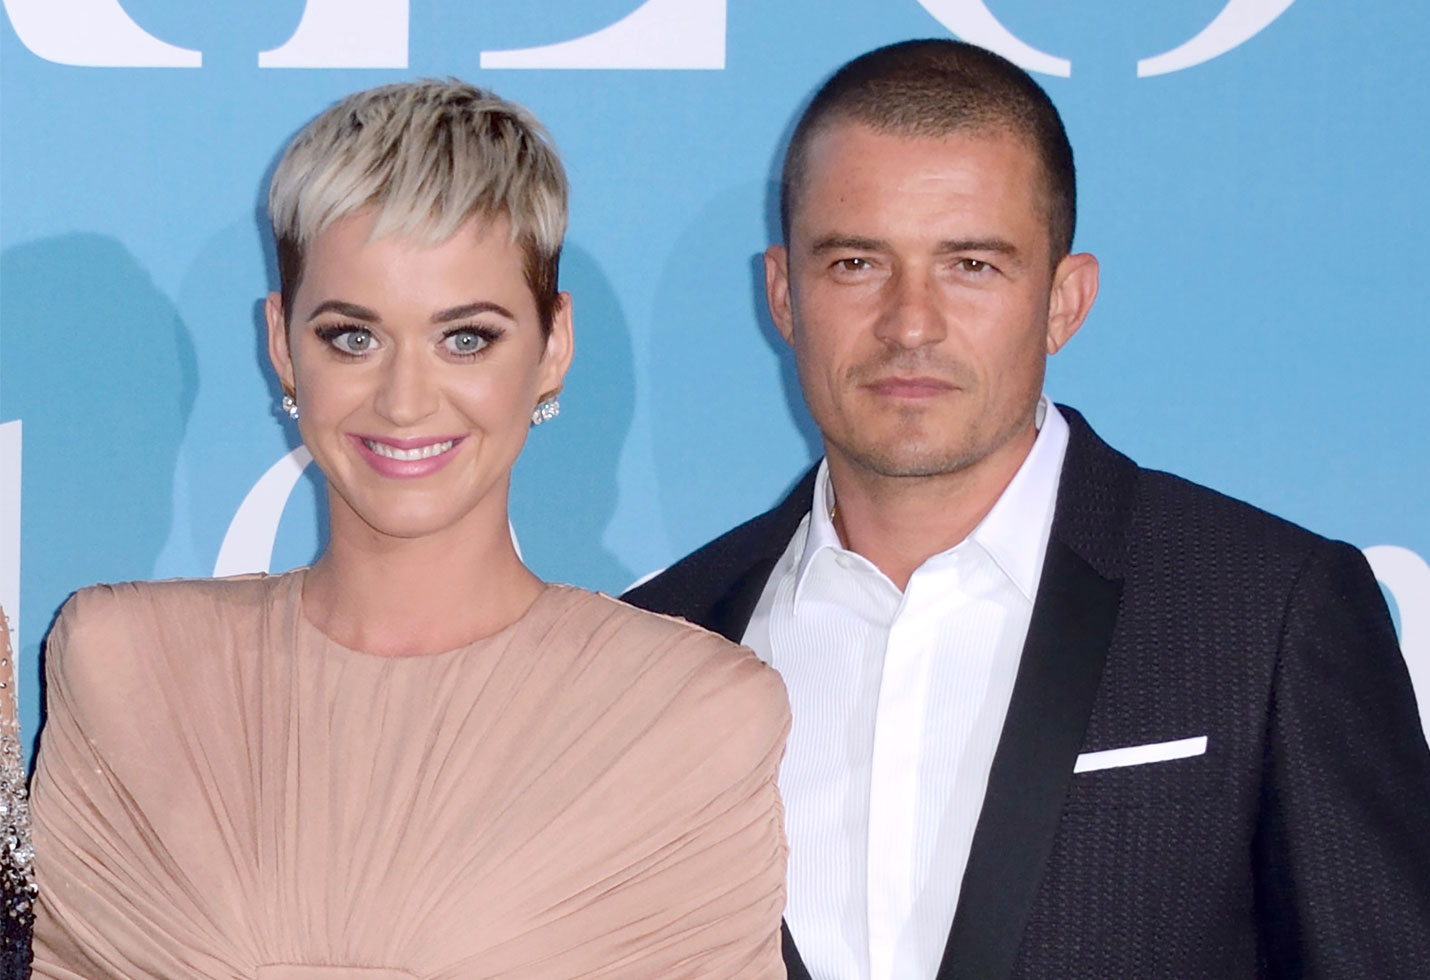 Katy perry orlando bloom engaged ring photo